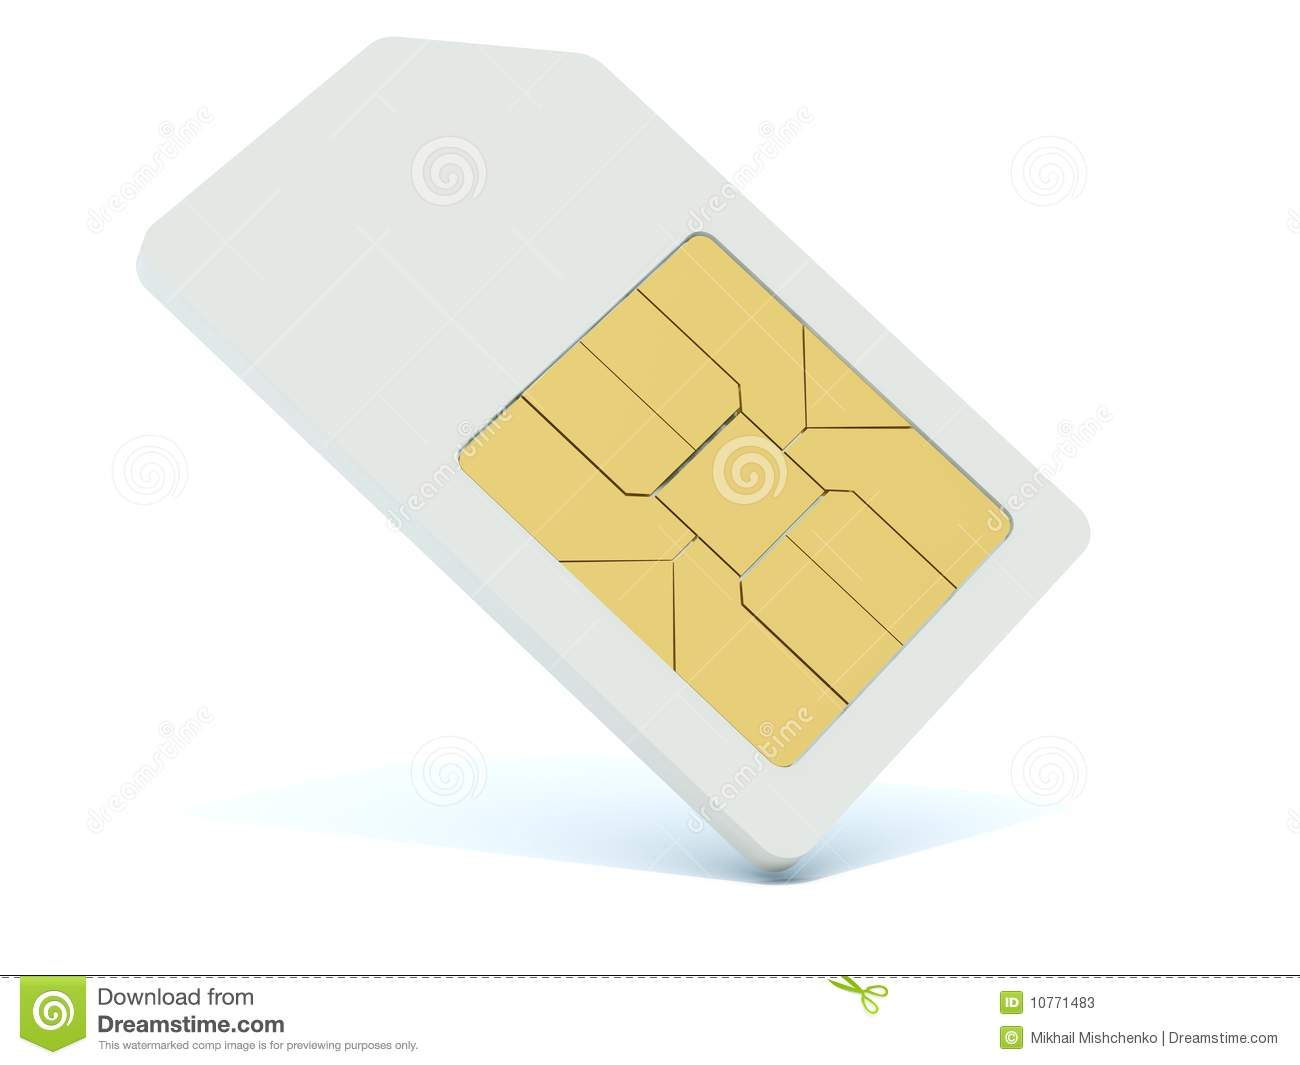 how to connect a sim card to a computer